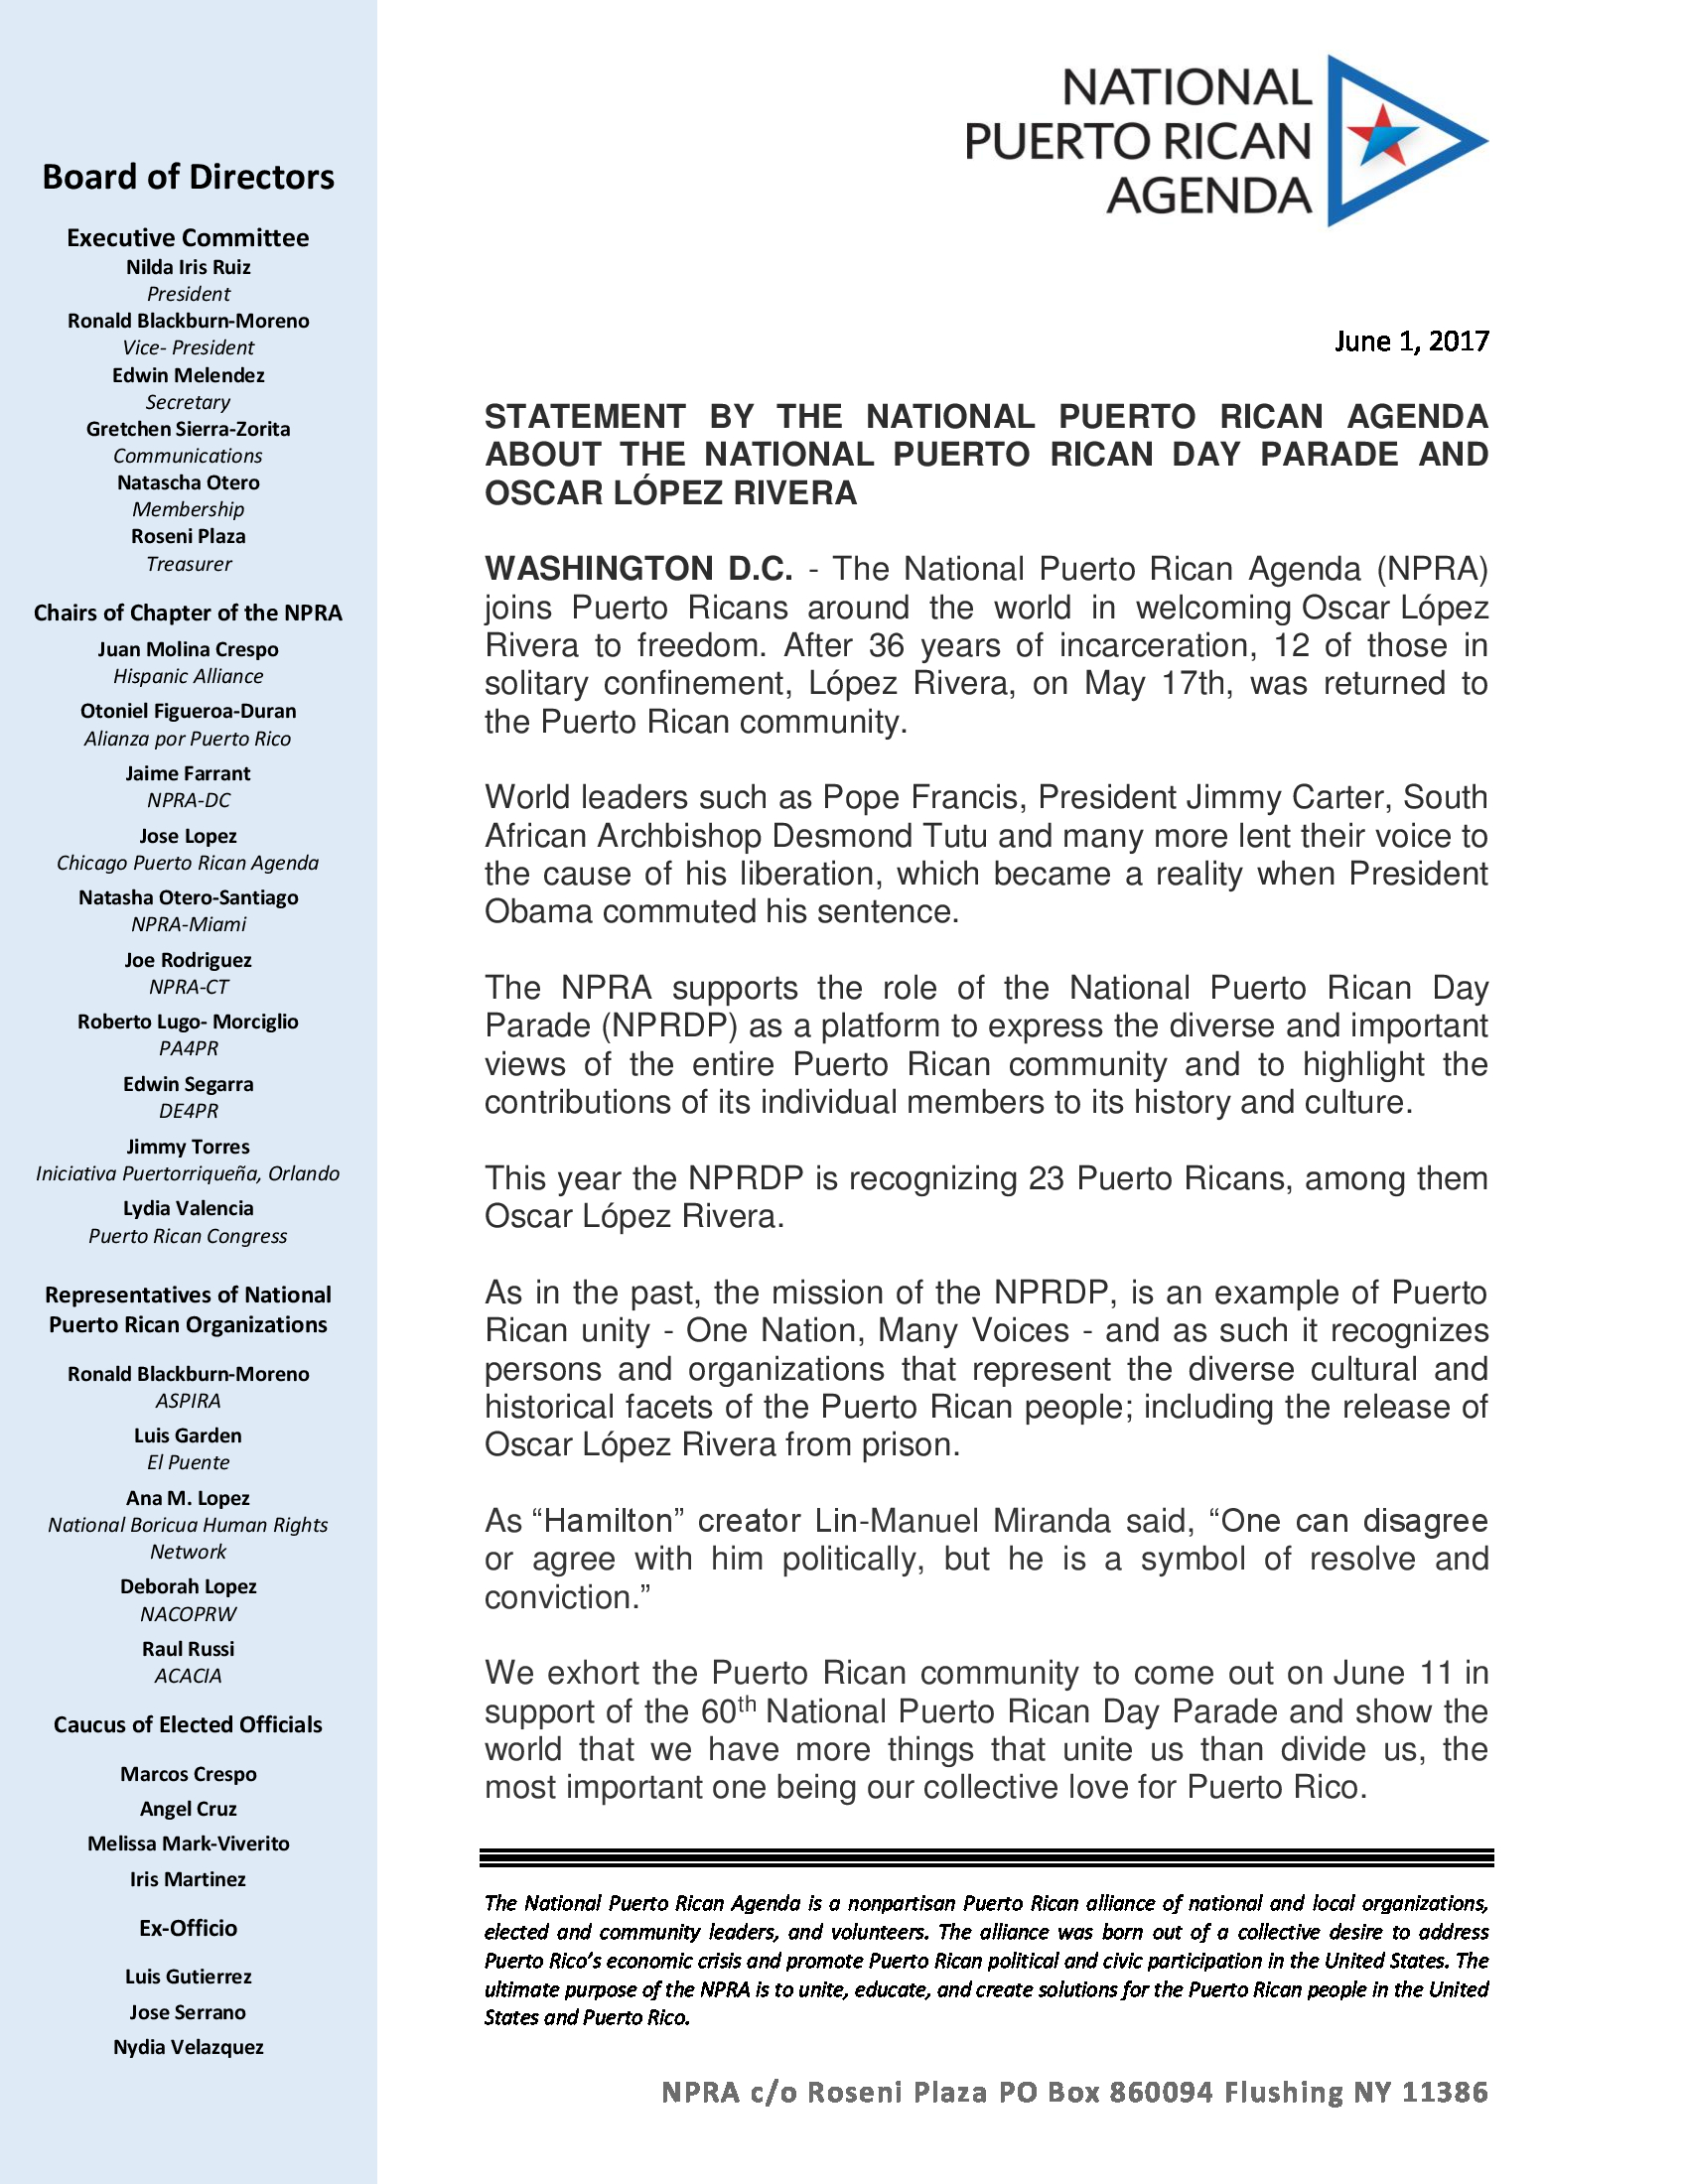 NPRA-Statement-re-NPRDP-and-OLR.jpg